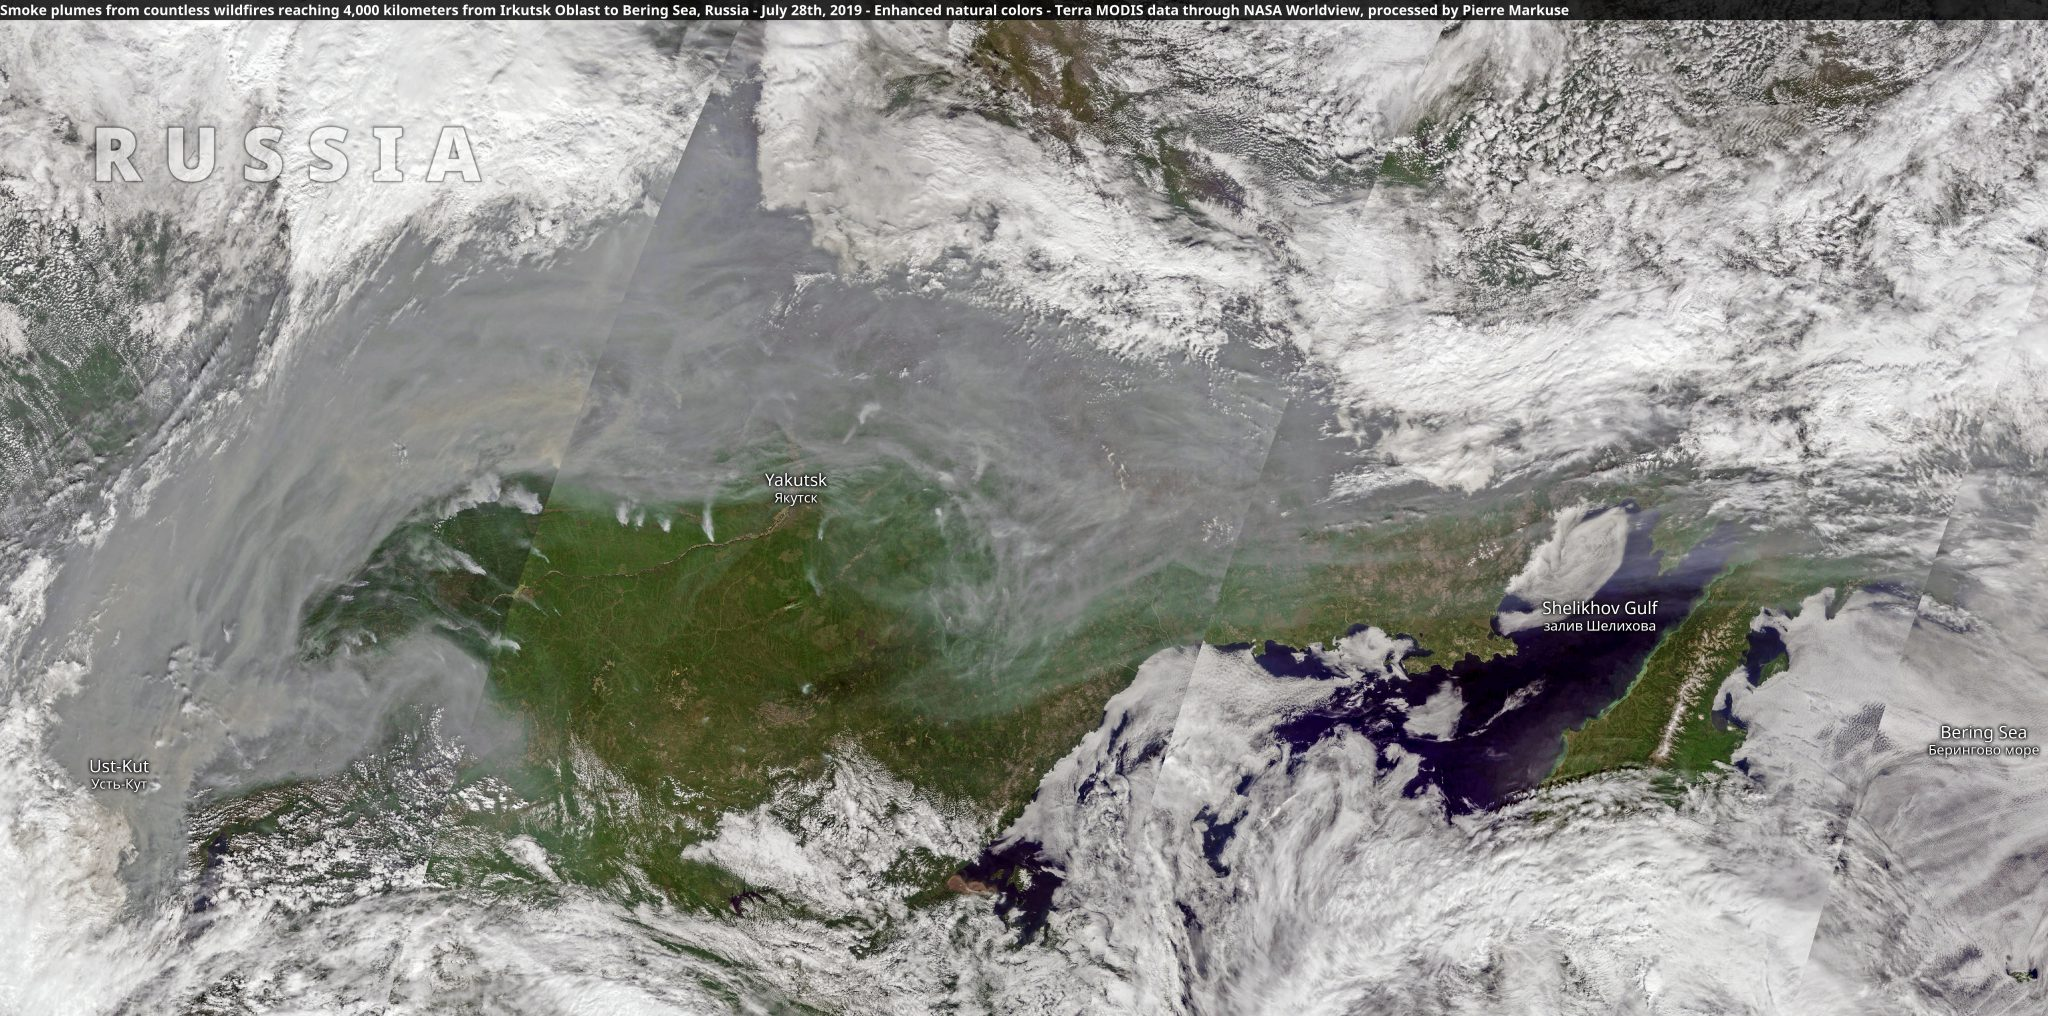 desc:Smoke plumes from countless wildfires reaching 4,000 kilometers from Irkutsk Oblast to Bering Sea, Russia